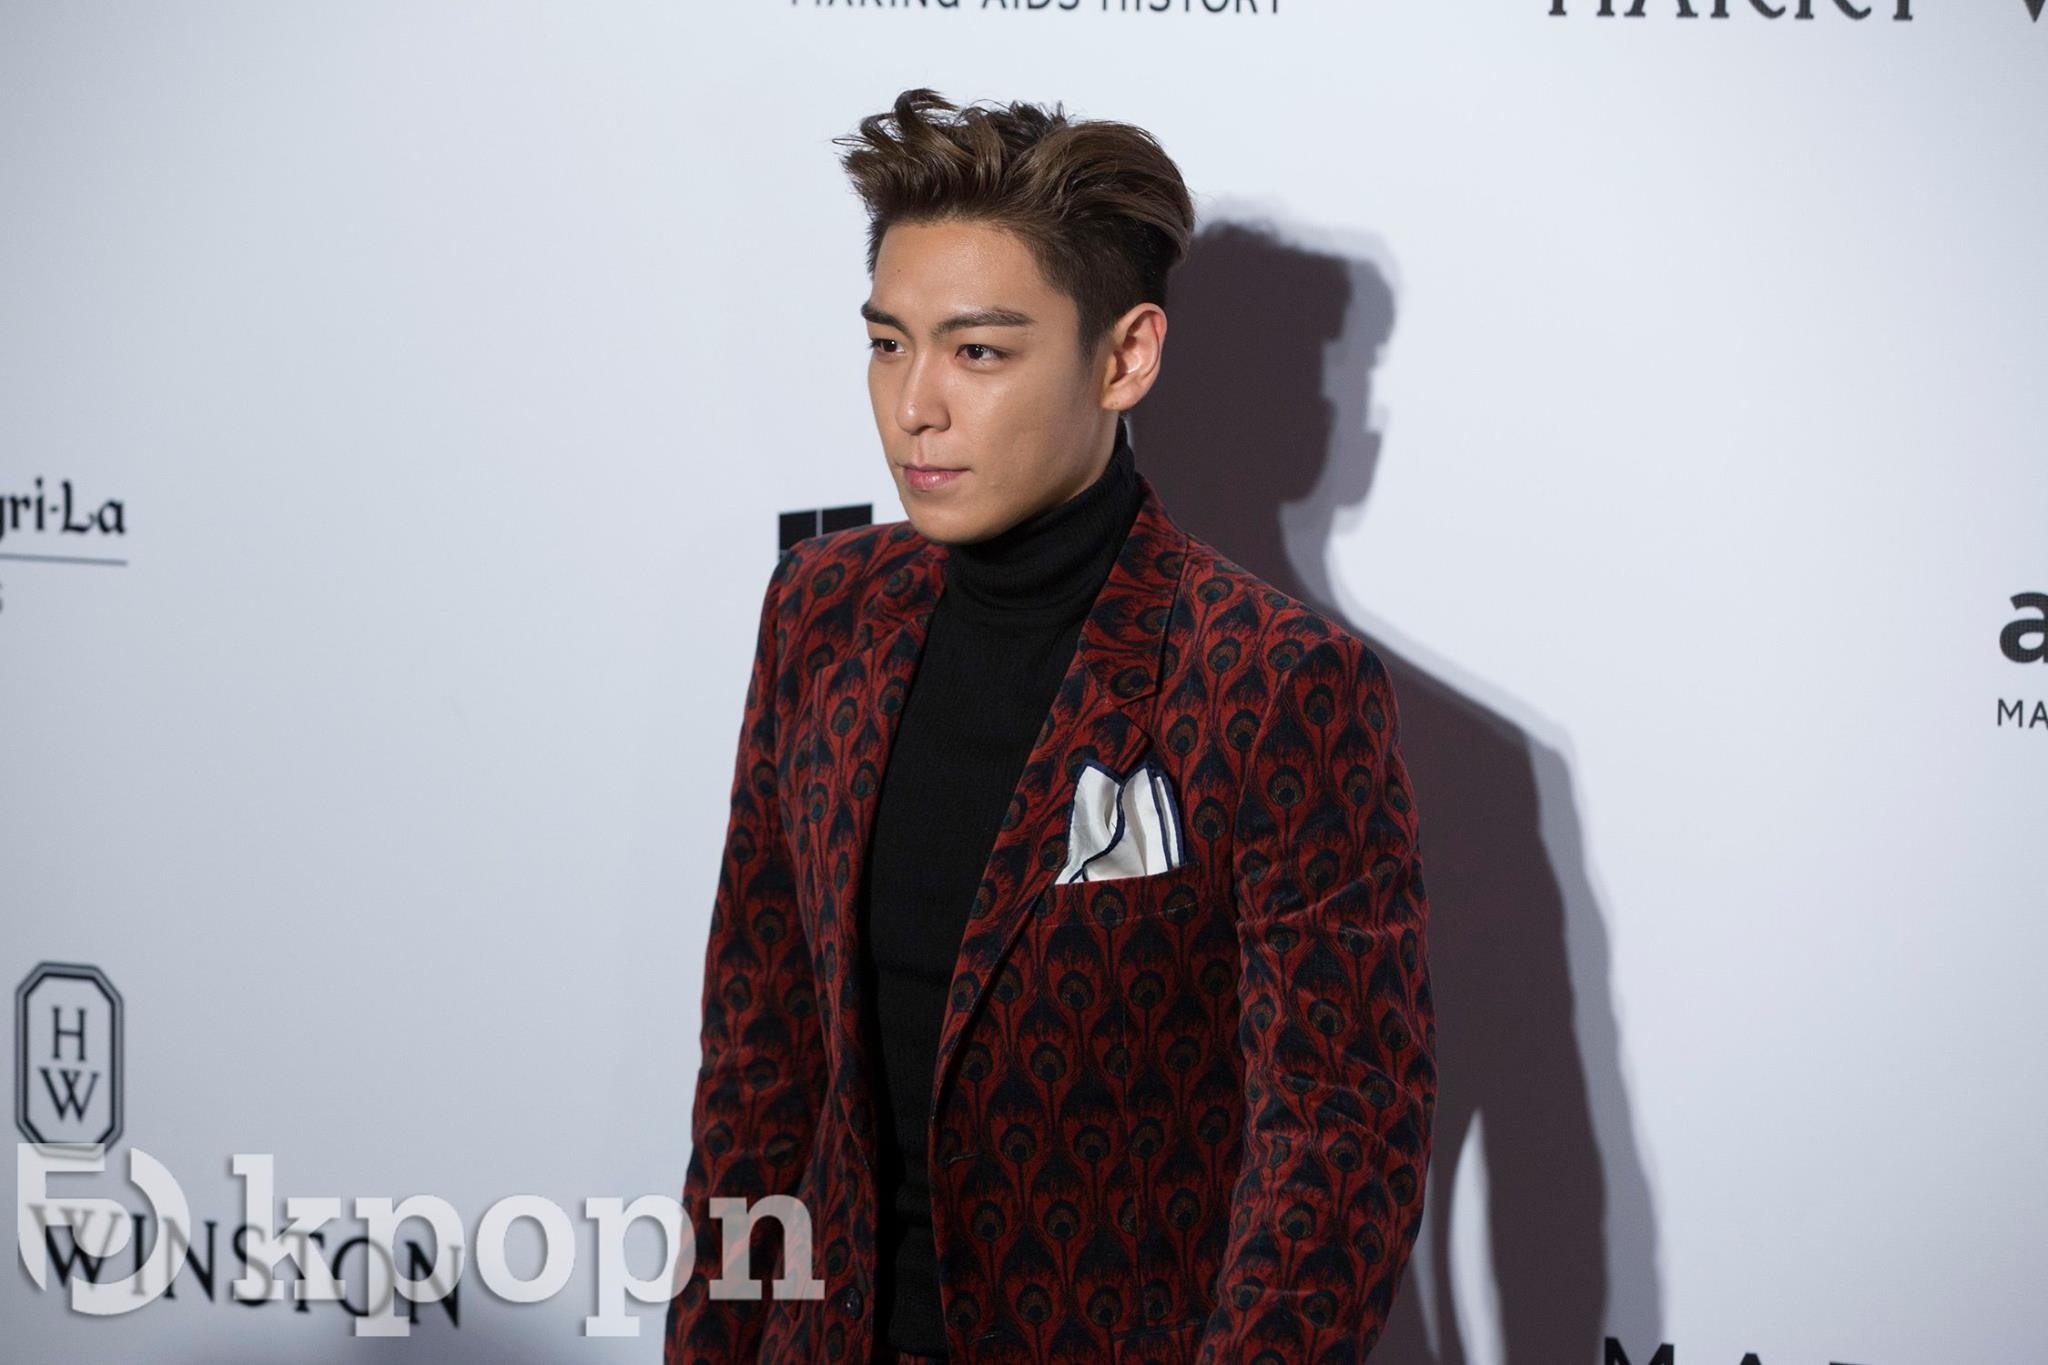 TOP amfAR Hong Kong by KPopcn 2015-03-14 009.jpg